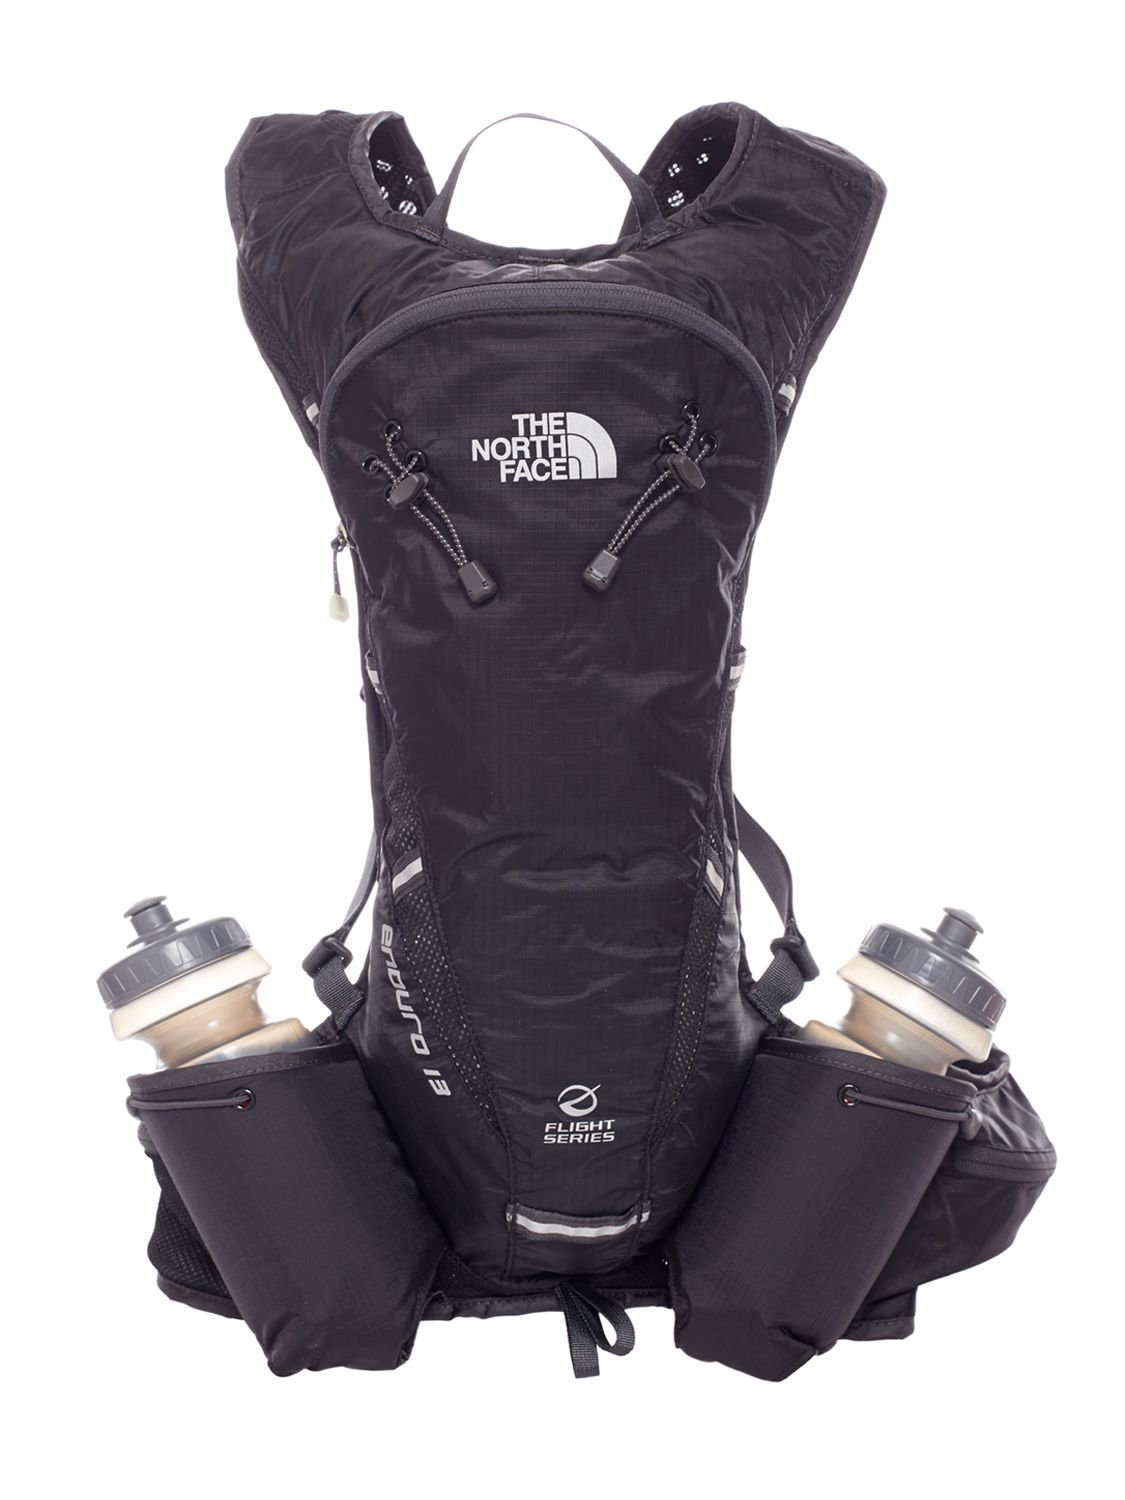 Lyst The North Face Enduro 13l Running Backpack In Black